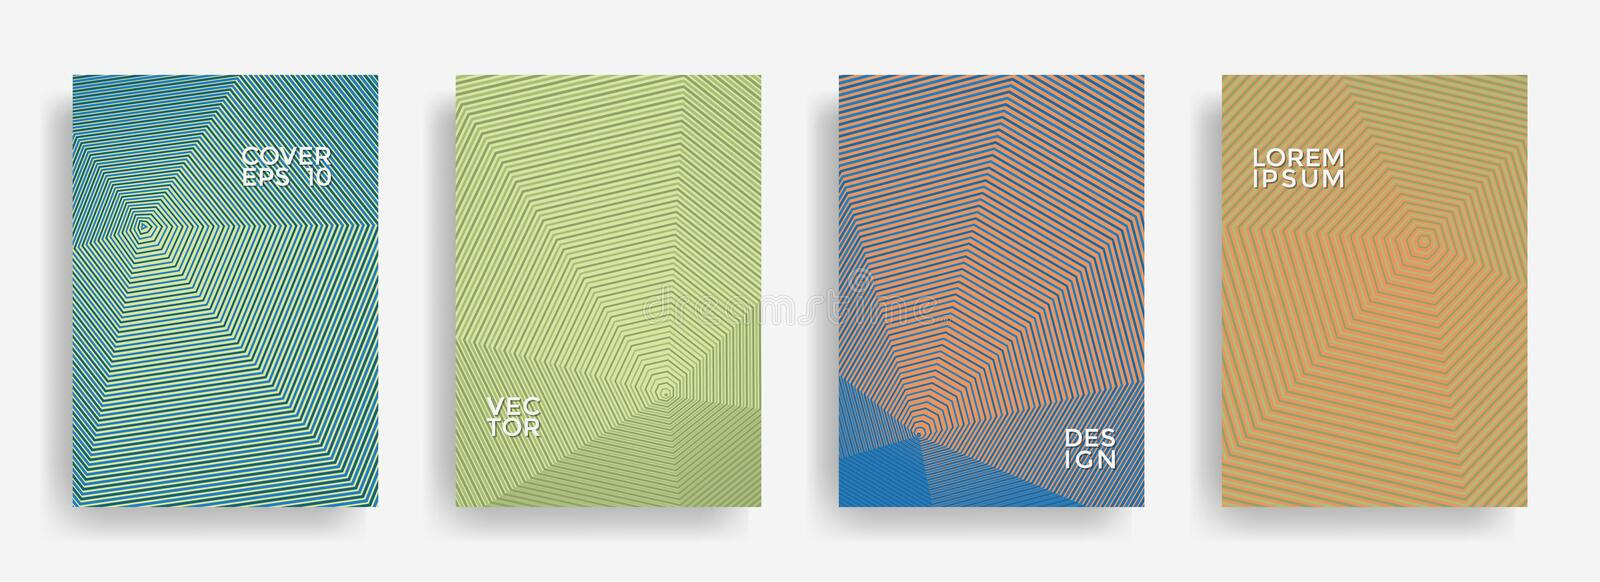 Bright annual report design vector collection. Halftone lines texture cover page layout templates set. royalty free illustration